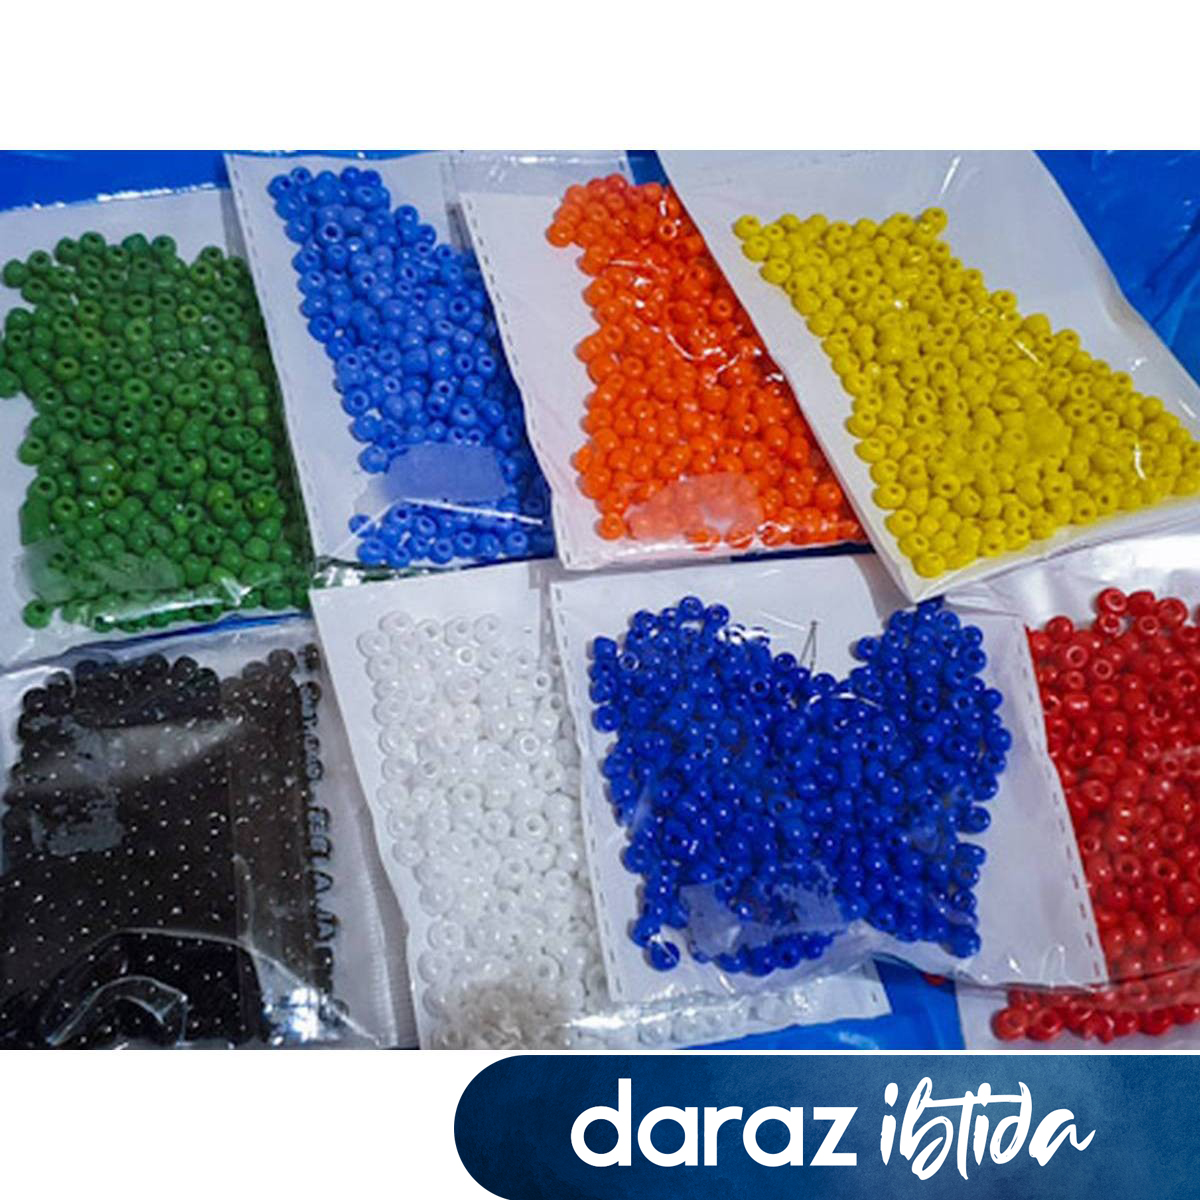 0.8 Bead Multi Beads Plastic 300grm 18 colour 1400pc Sewing Jewelry Making DIY Handmade Accessories Craft supplies